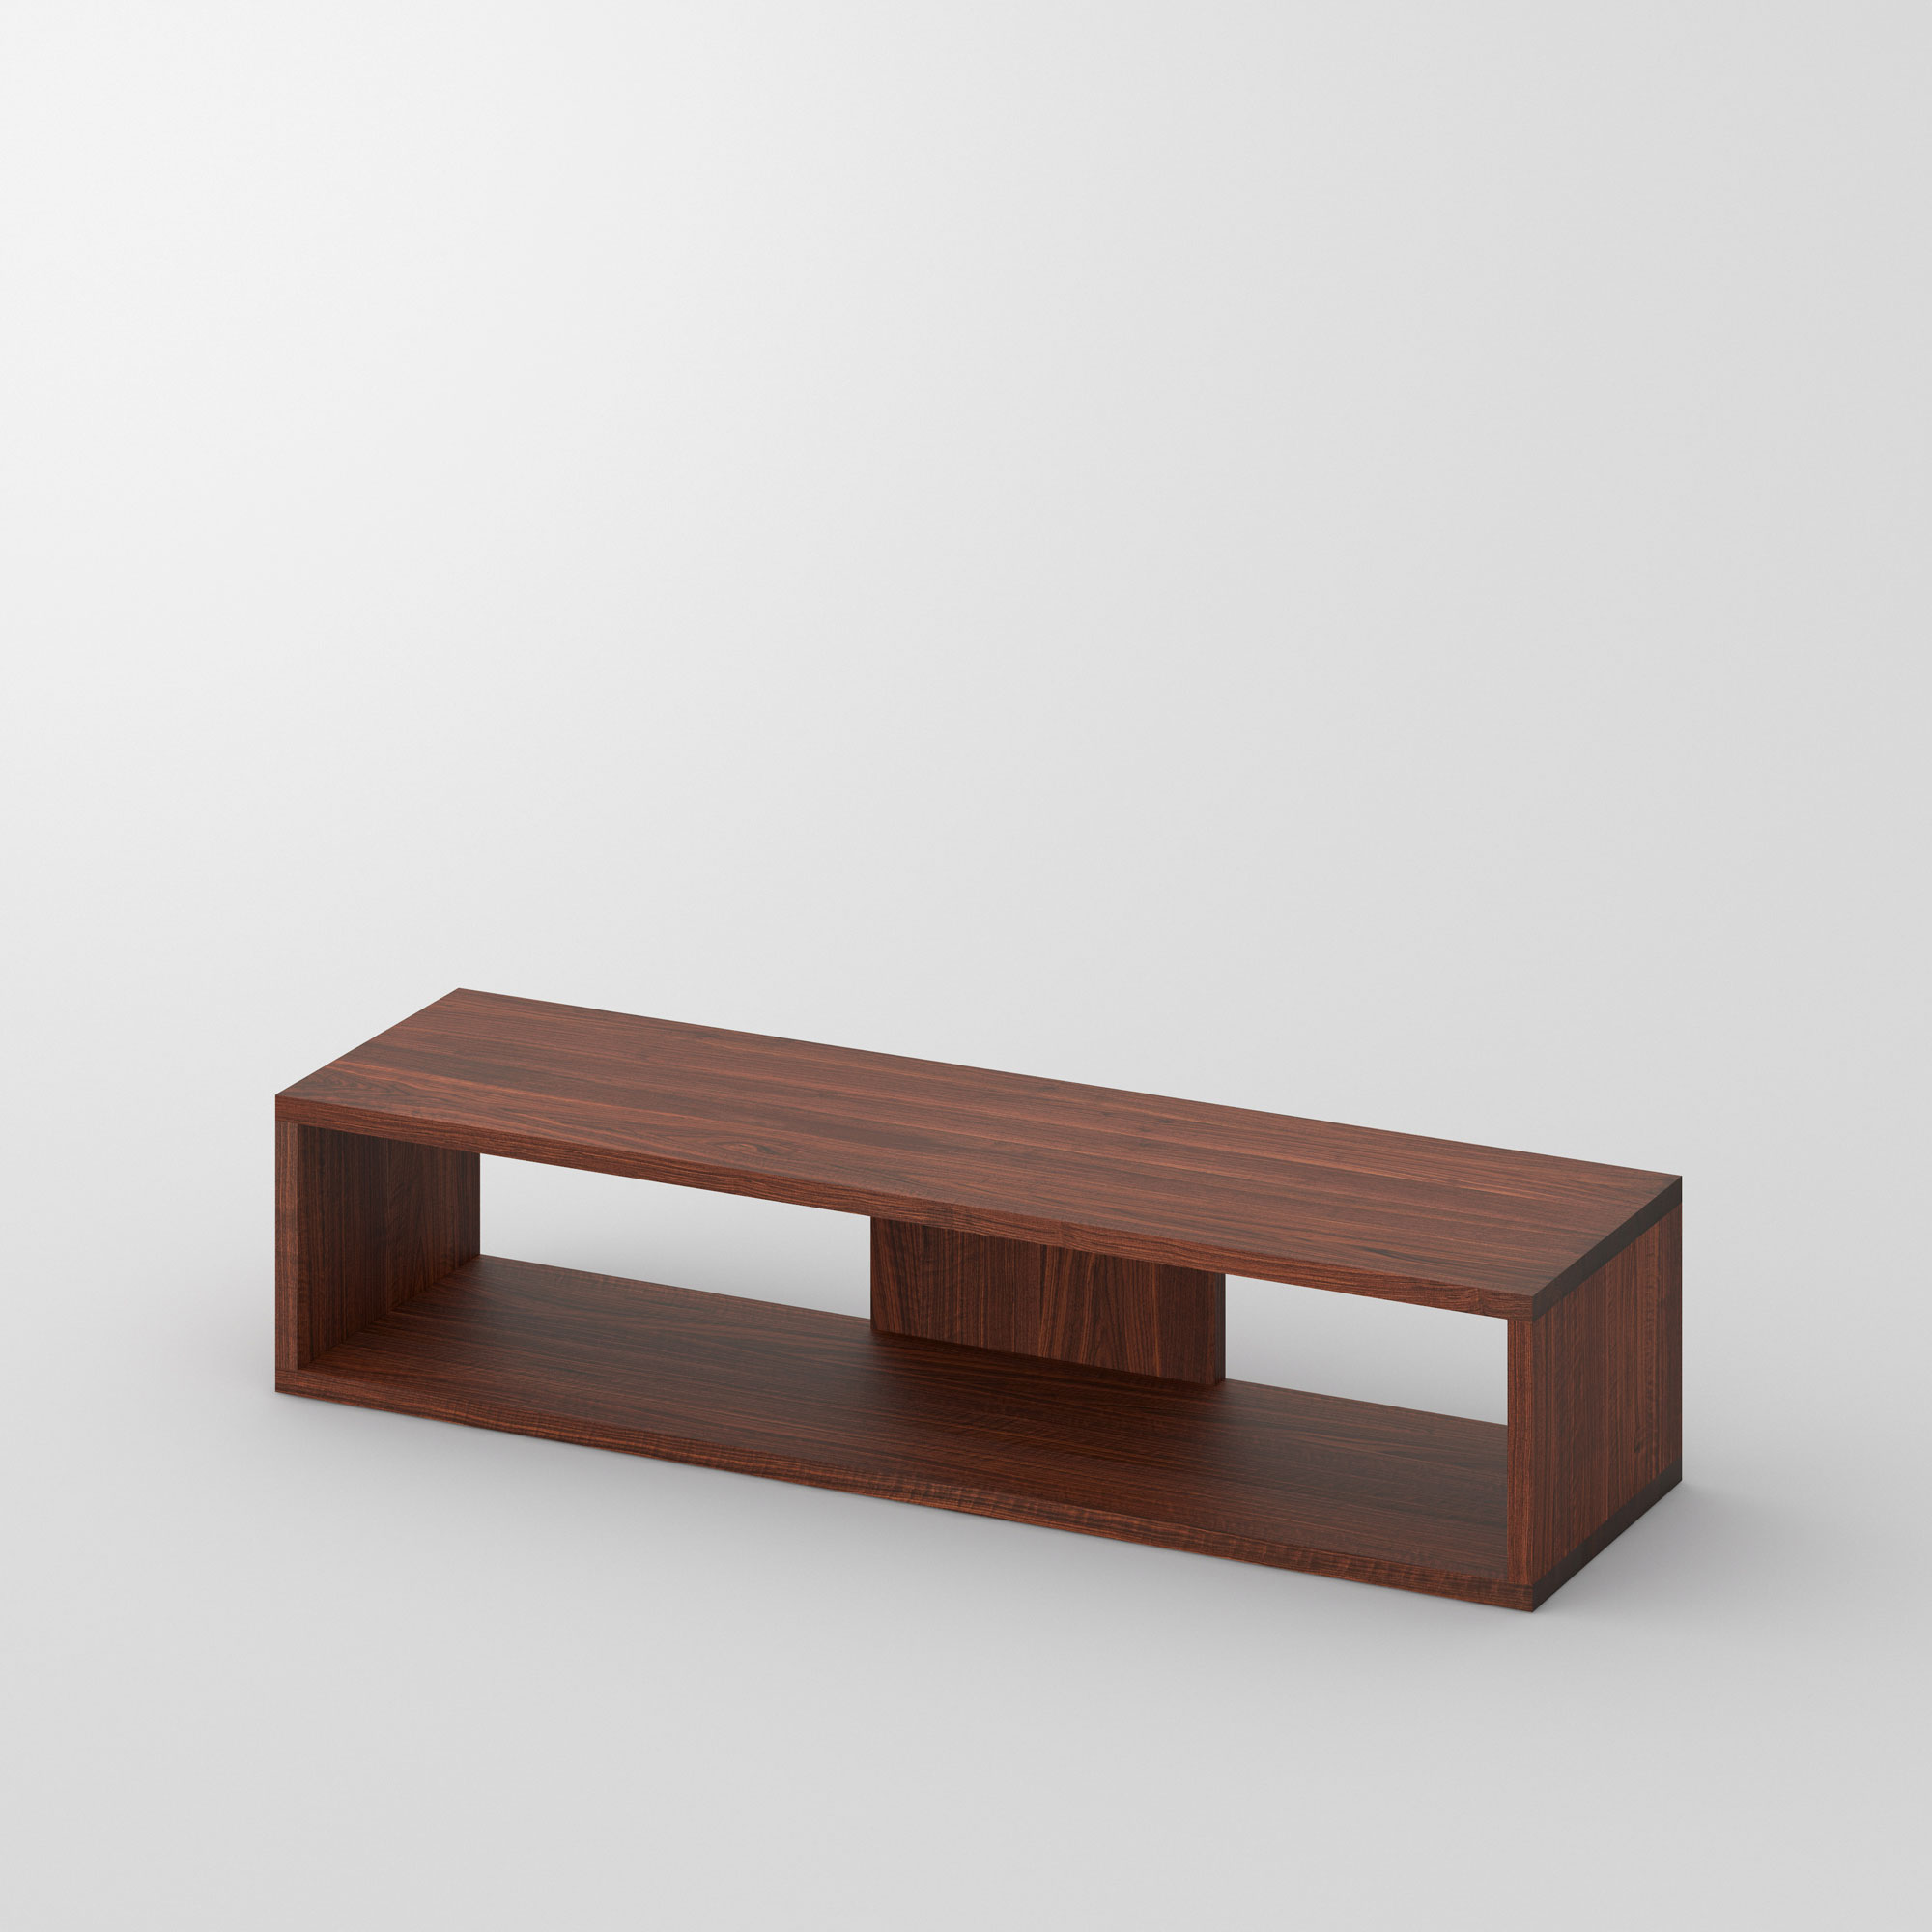 TV Shelf MENA TV cam1 custom made in solid wood by vitamin design